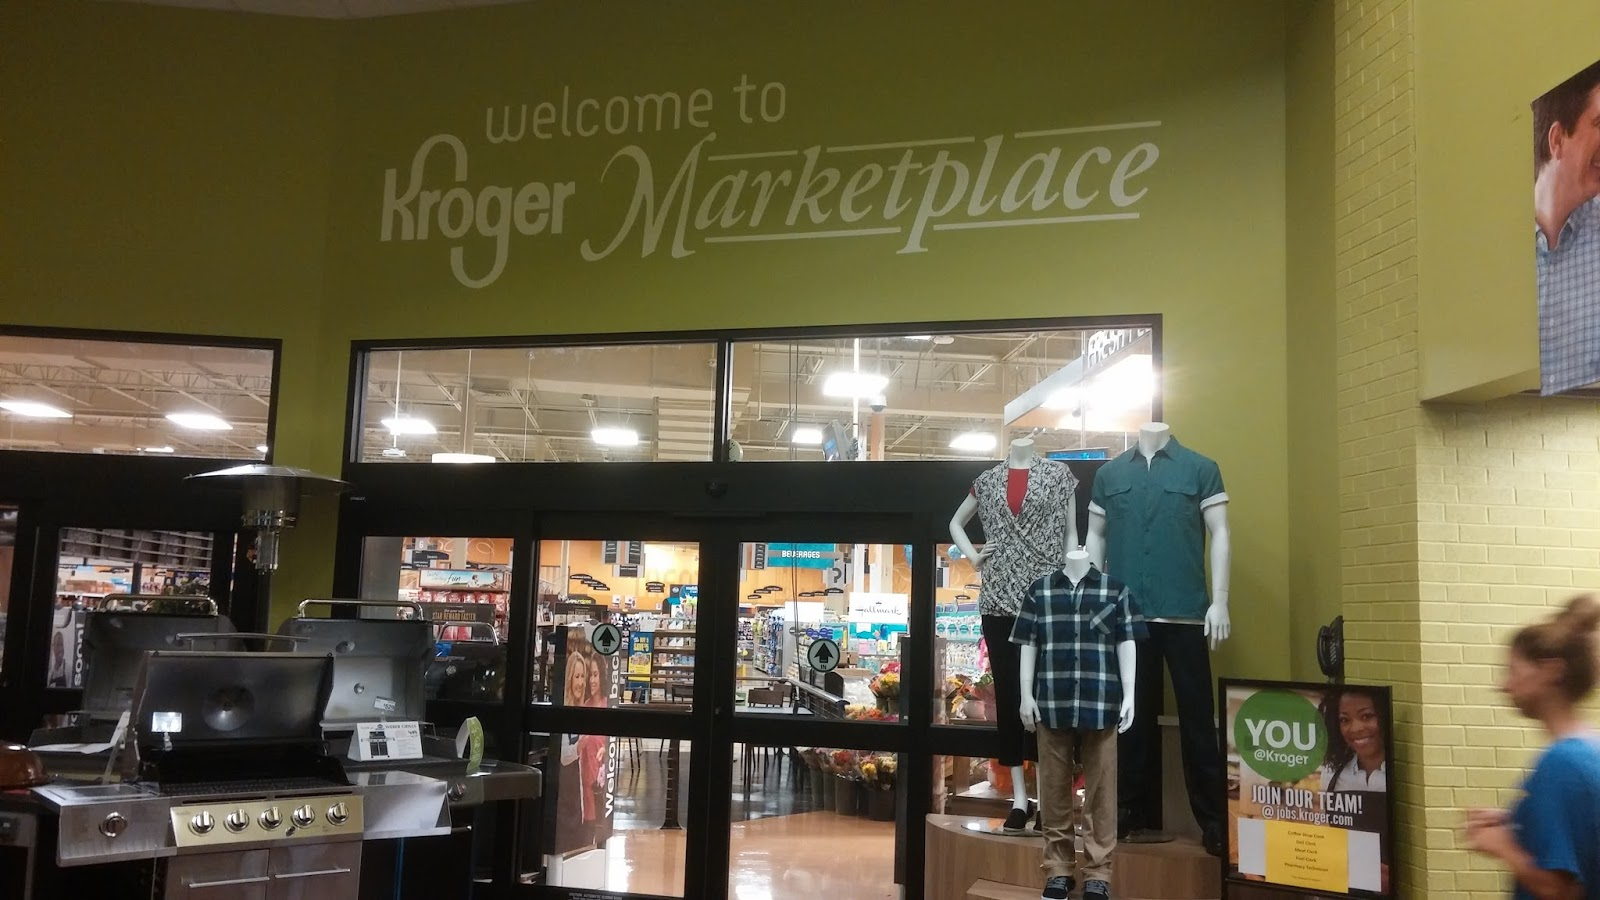 Kroger Marketplace, Mansfield, OH